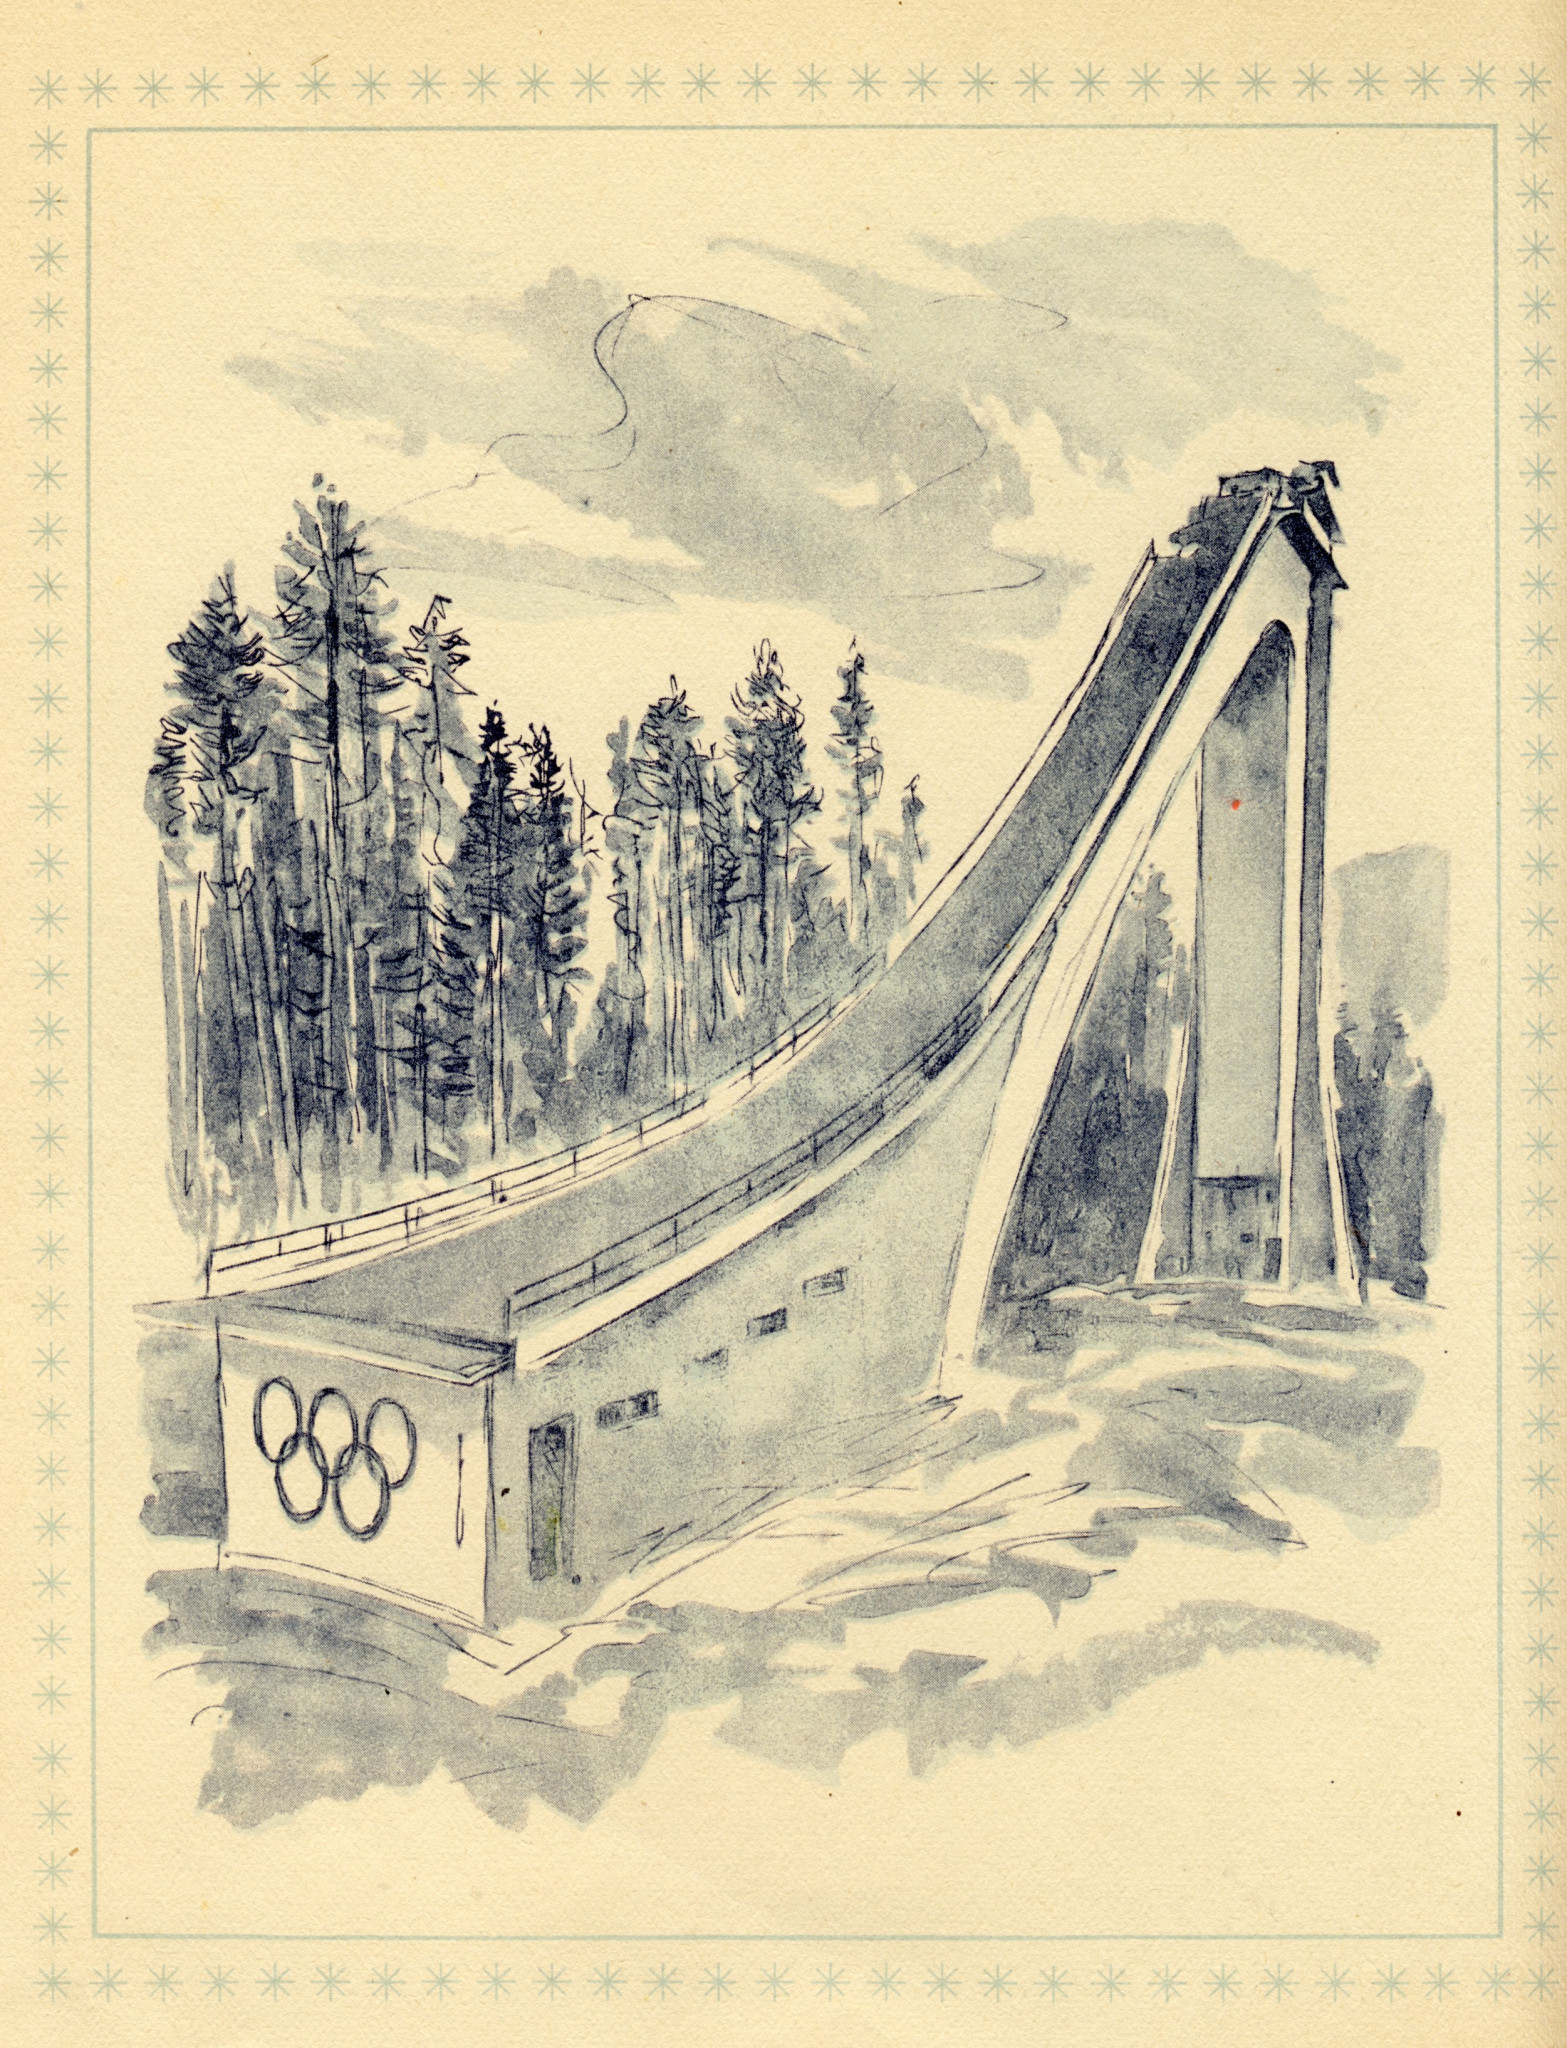 A drawing of the ski jump at the 1956 Winter Olympics in Cortina ©Philip Barker